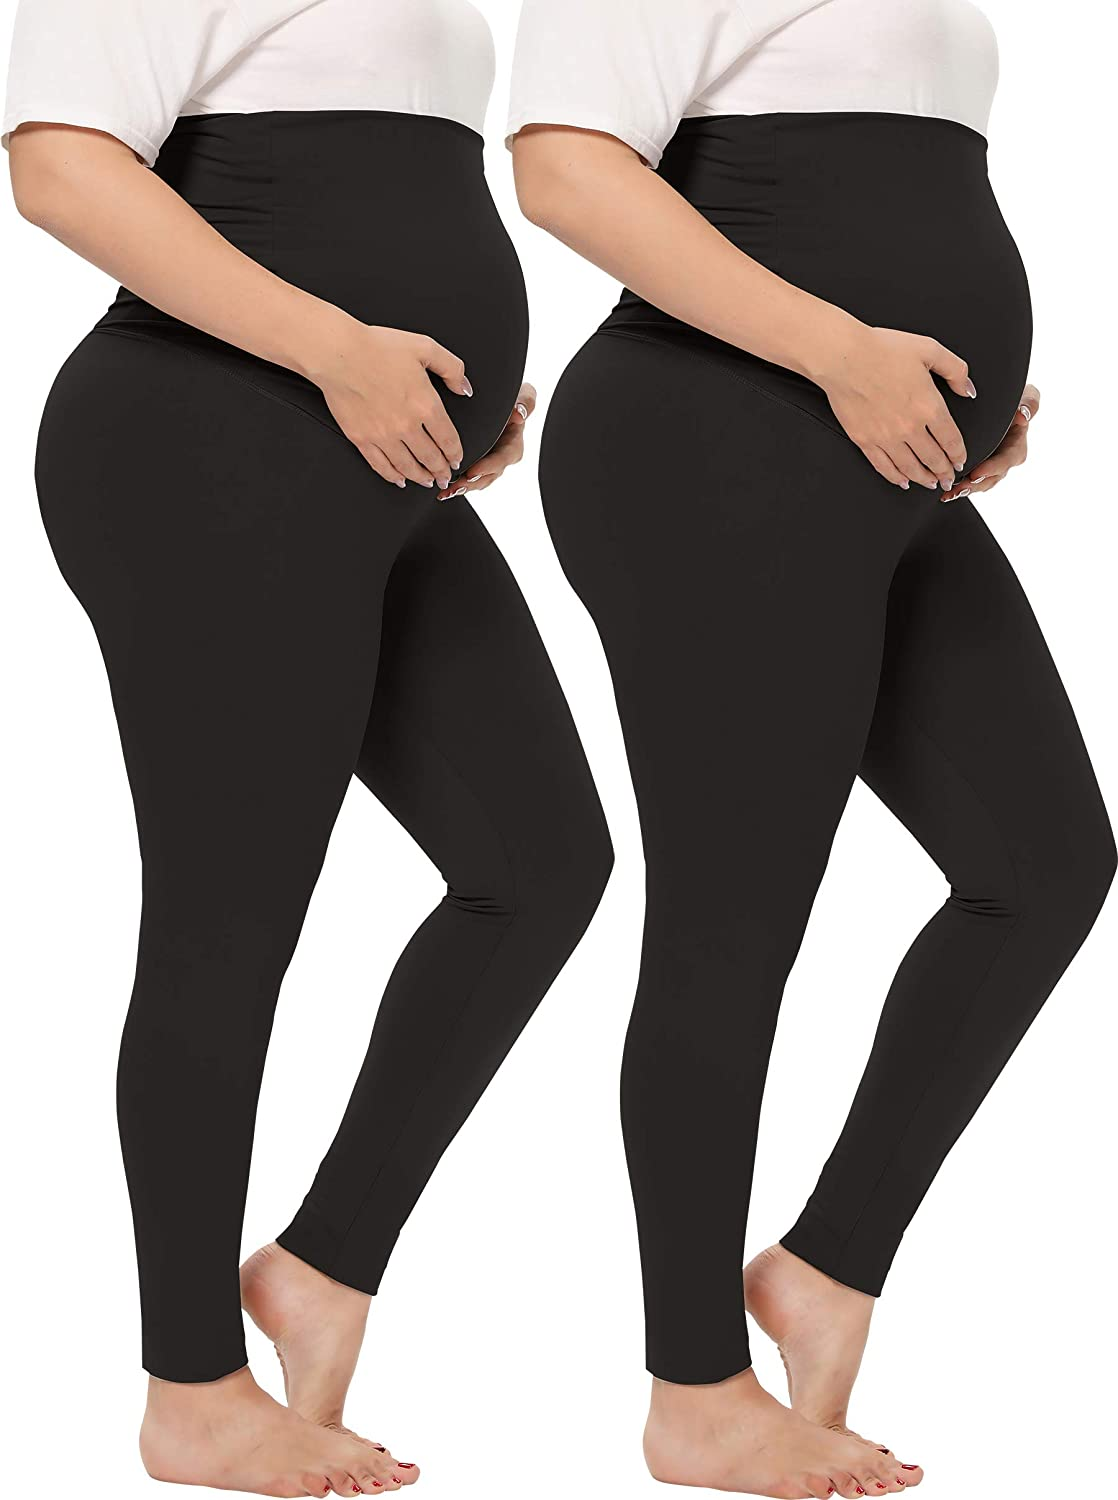 TOUCH LOOM Maternity Pants Over Belly Omaha Mall High Full Ranking TOP2 Waist